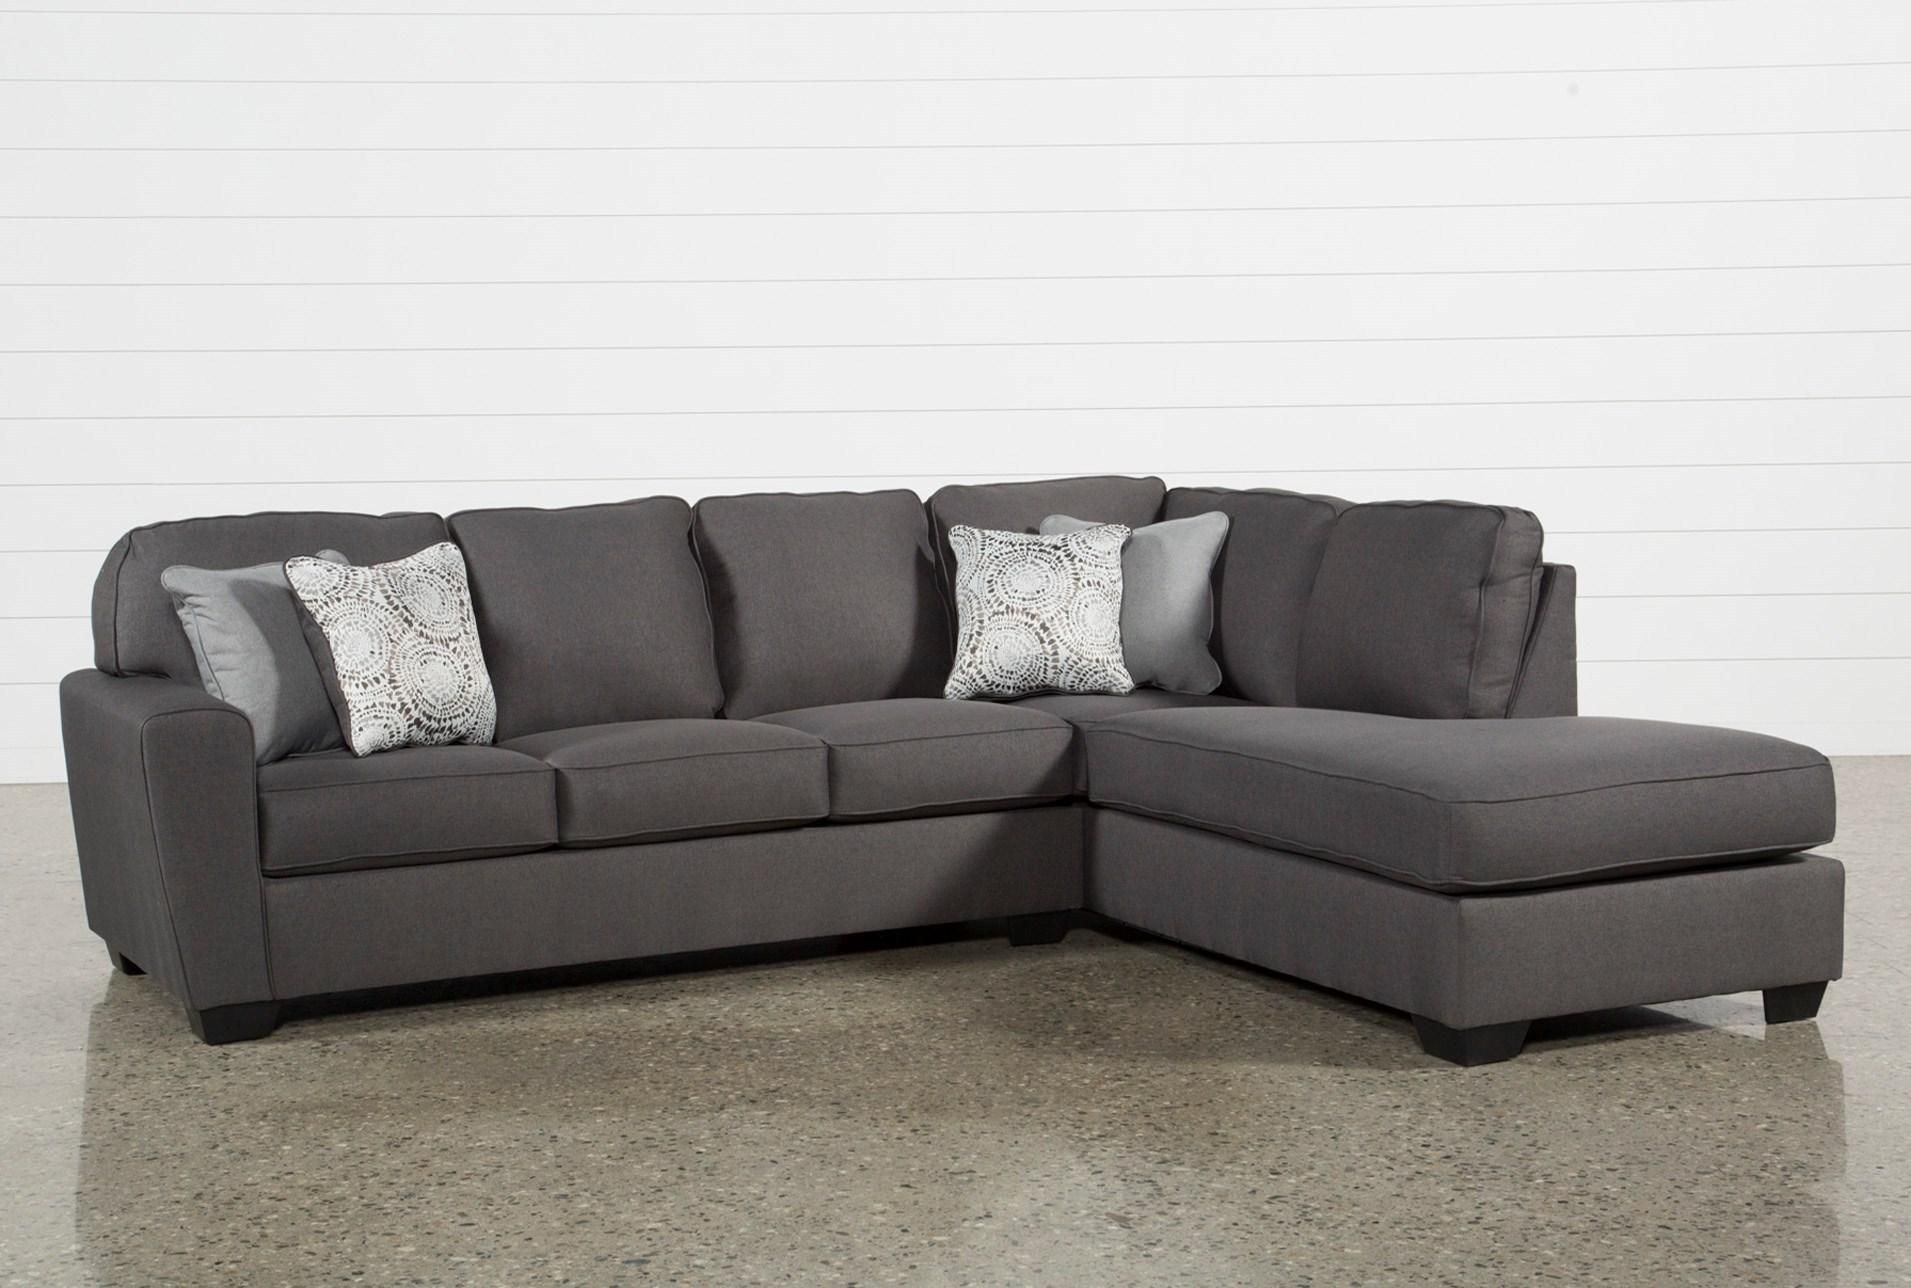 Mcdade Graphite 2 Piece Sectional W/raf Chaise | Livingroom Intended For Arrowmask 2 Piece Sectionals With Sleeper & Right Facing Chaise (View 5 of 25)